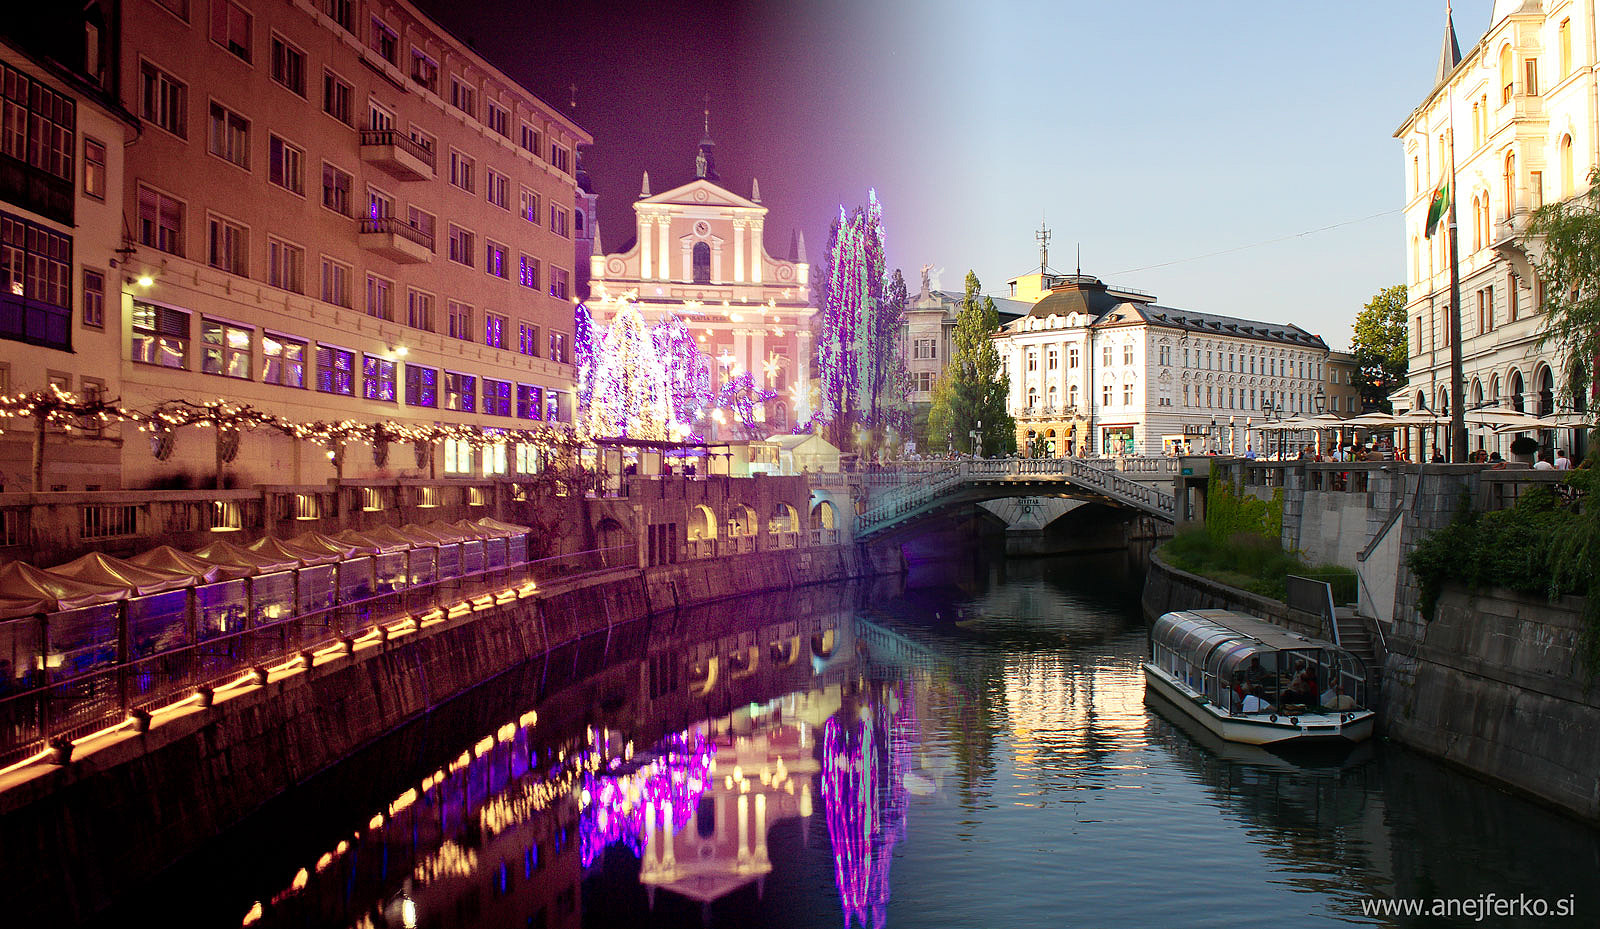 Photograph Ljubljana from Winter to Summer by Anej Ferko on 500px